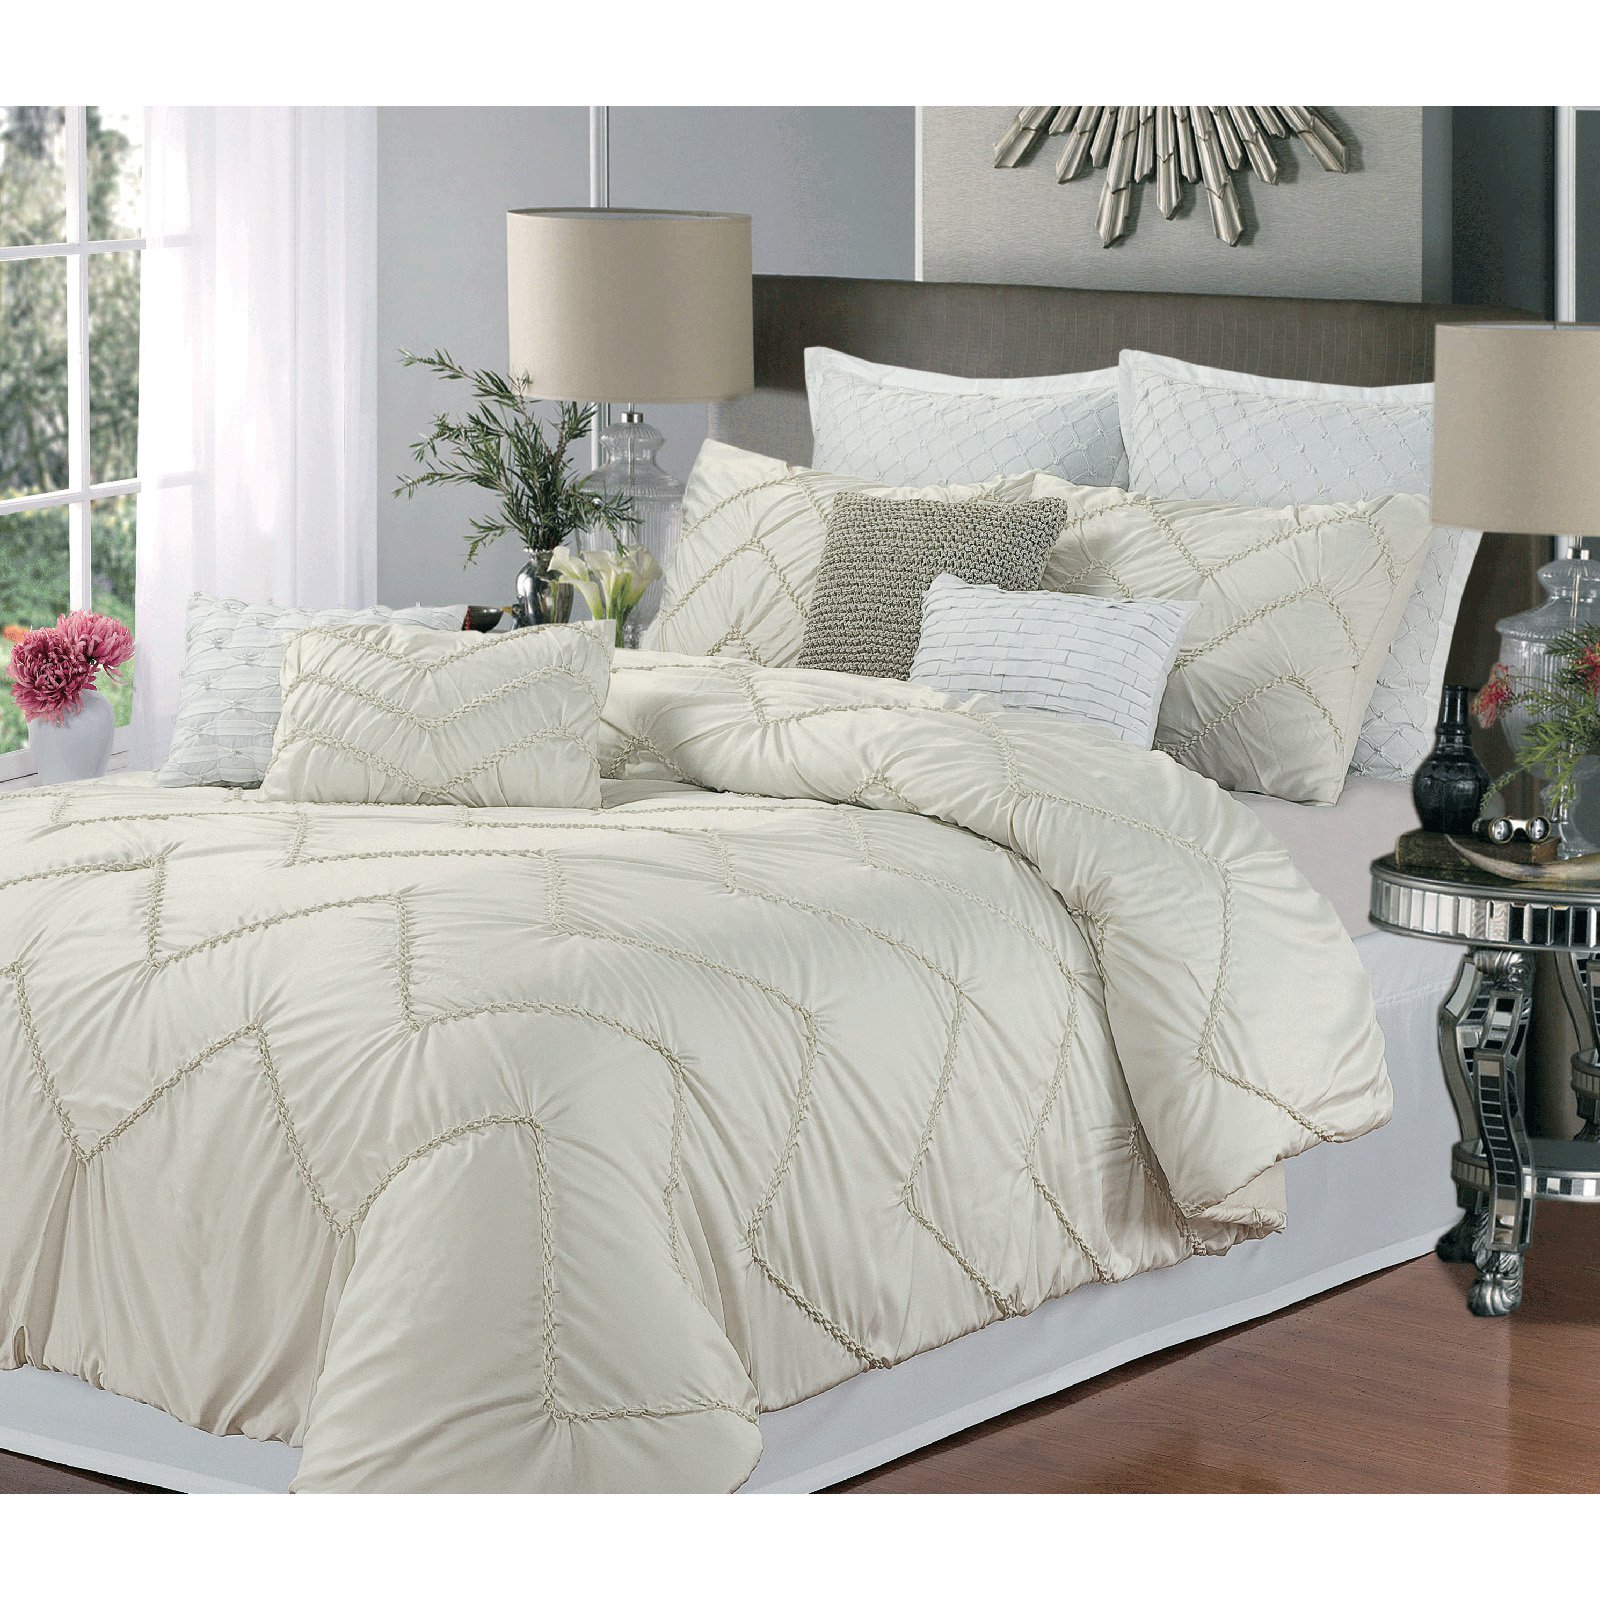 ross white stylish comforter kmart quilts bedding beyond comforters overstock bedroom bath bedspreads target cream set queen teen cotton and sears comfor cozy com for sets bed ideas